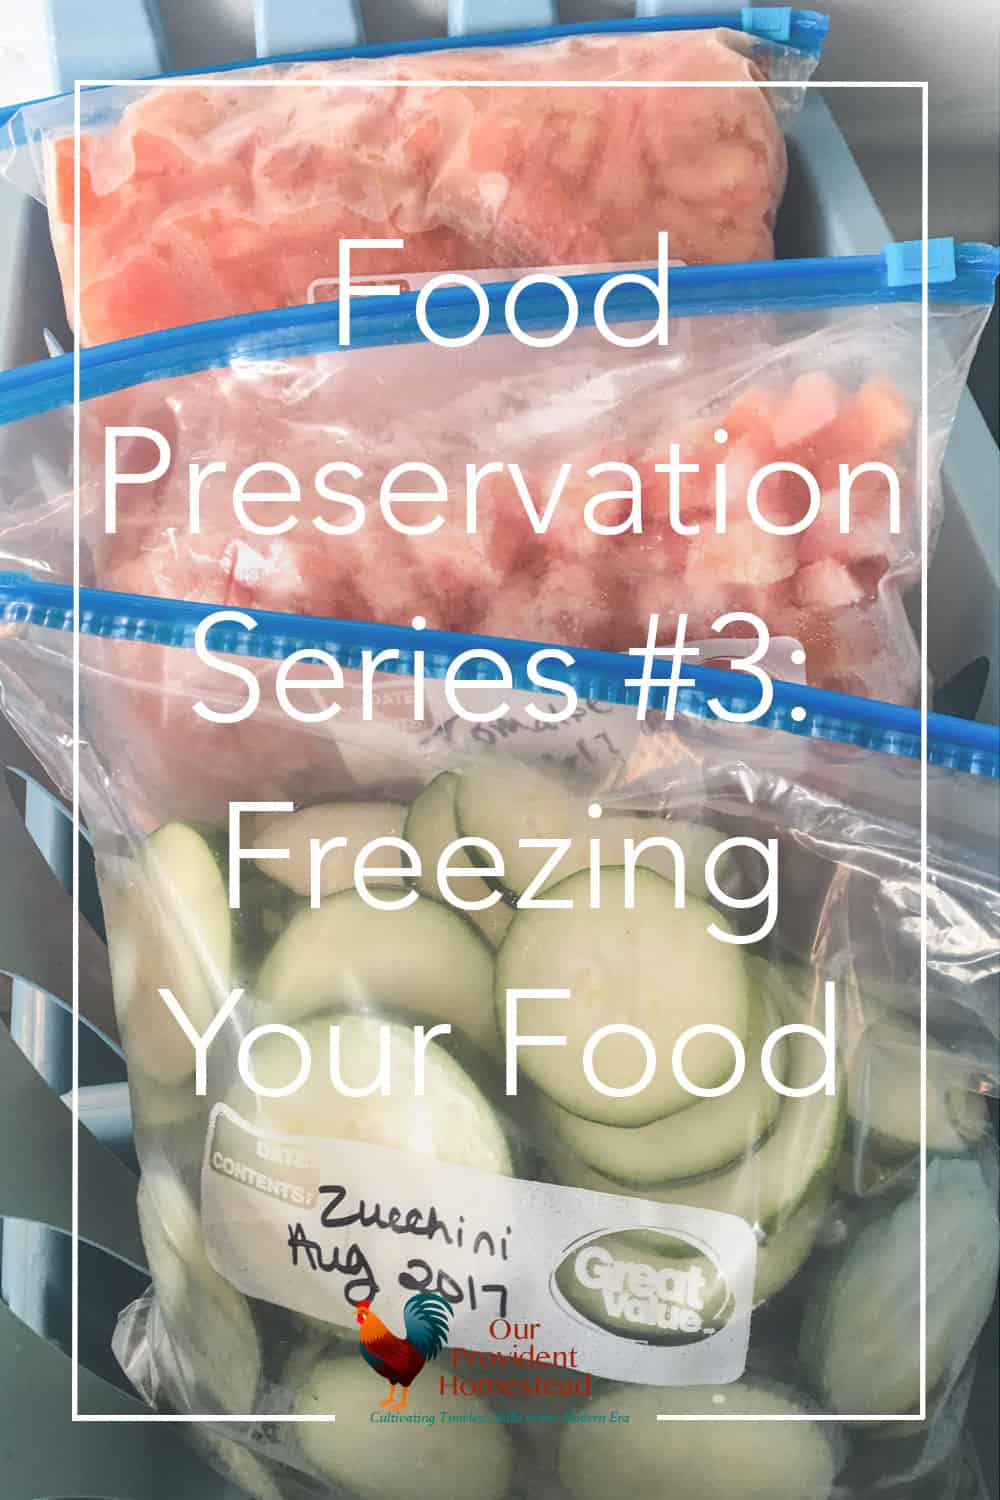 How do you preserve your food at home? Click here to discuss freezing as one way to preserve food in our four part preservation series. #foodpreservation #harvest #gardening